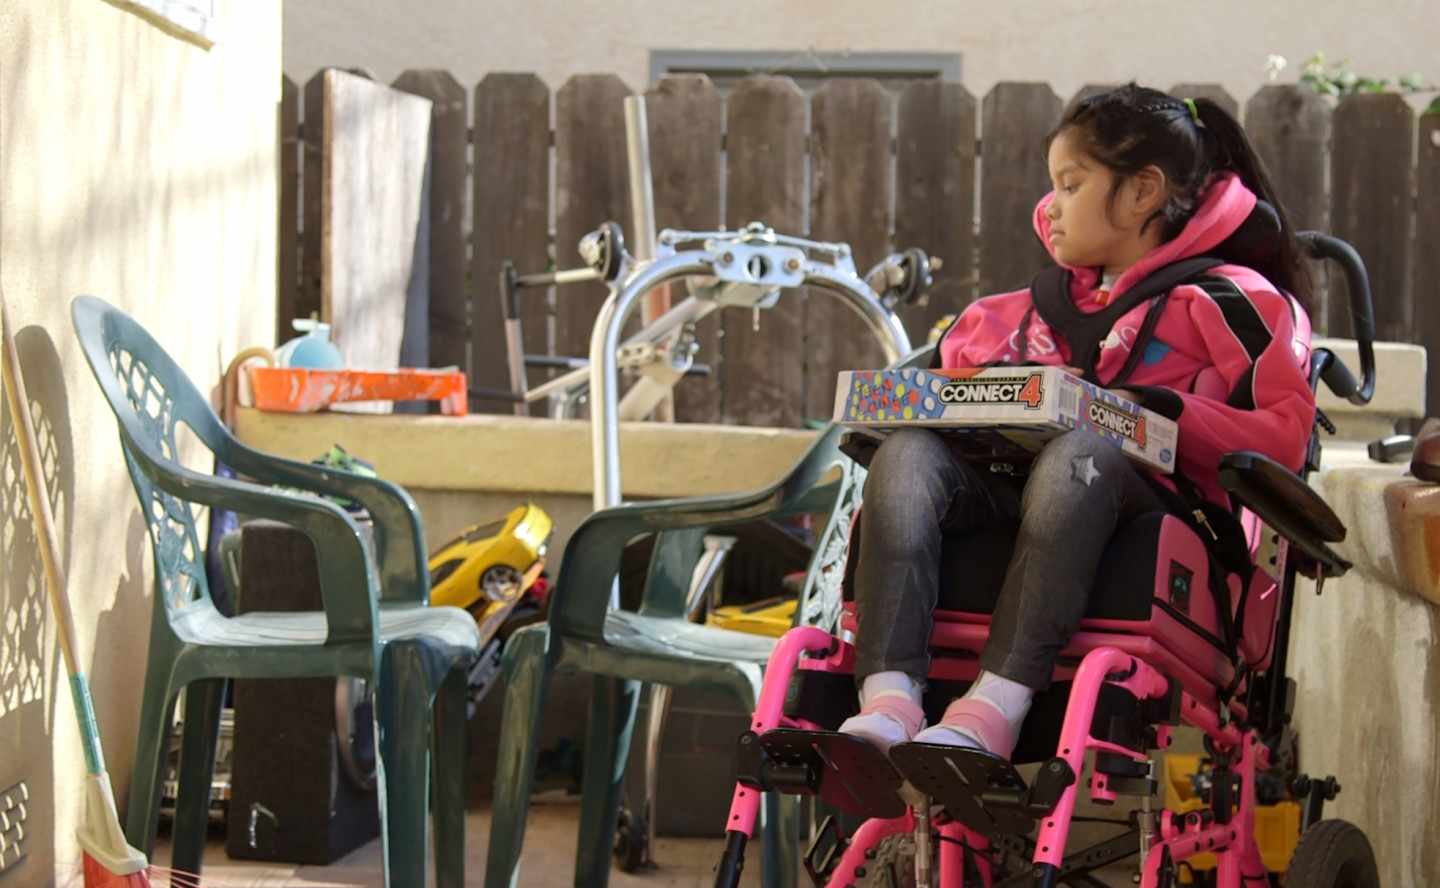 9-year-old Jacqueline Funes was paralyzed from the neck down after being shot in the neck while playing in front of her house. (Adam Grossberg/KQED)